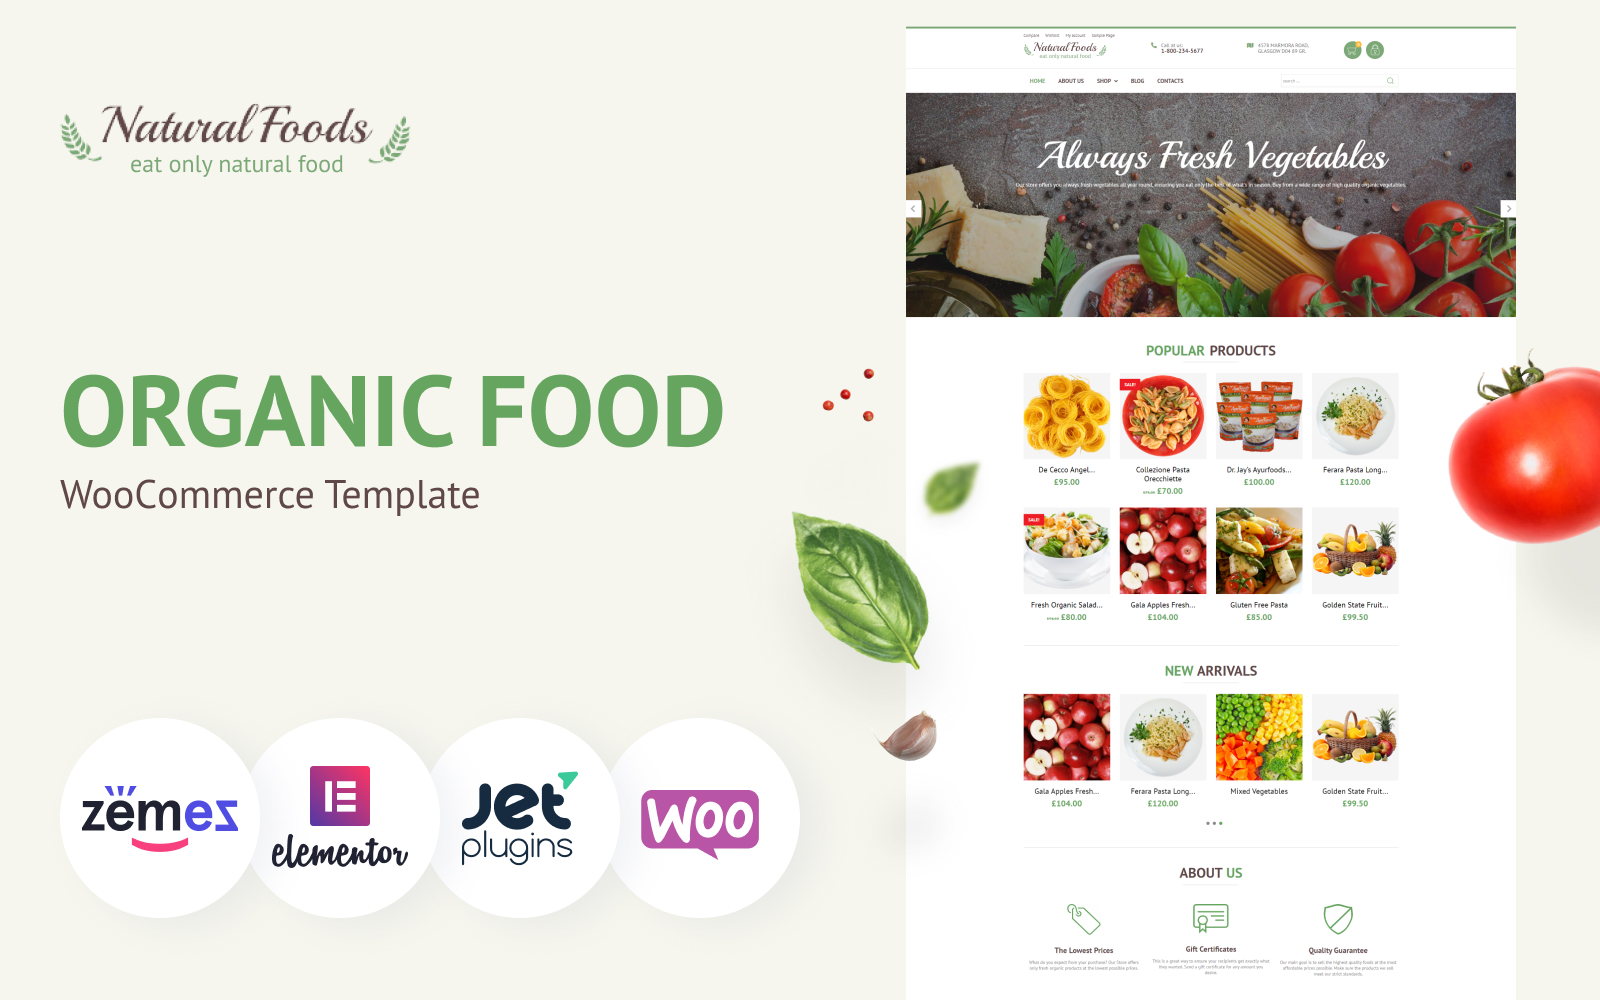 Reszponzív Natural Foods - Organic Food Template for Online Stores WooCommerce sablon 55738